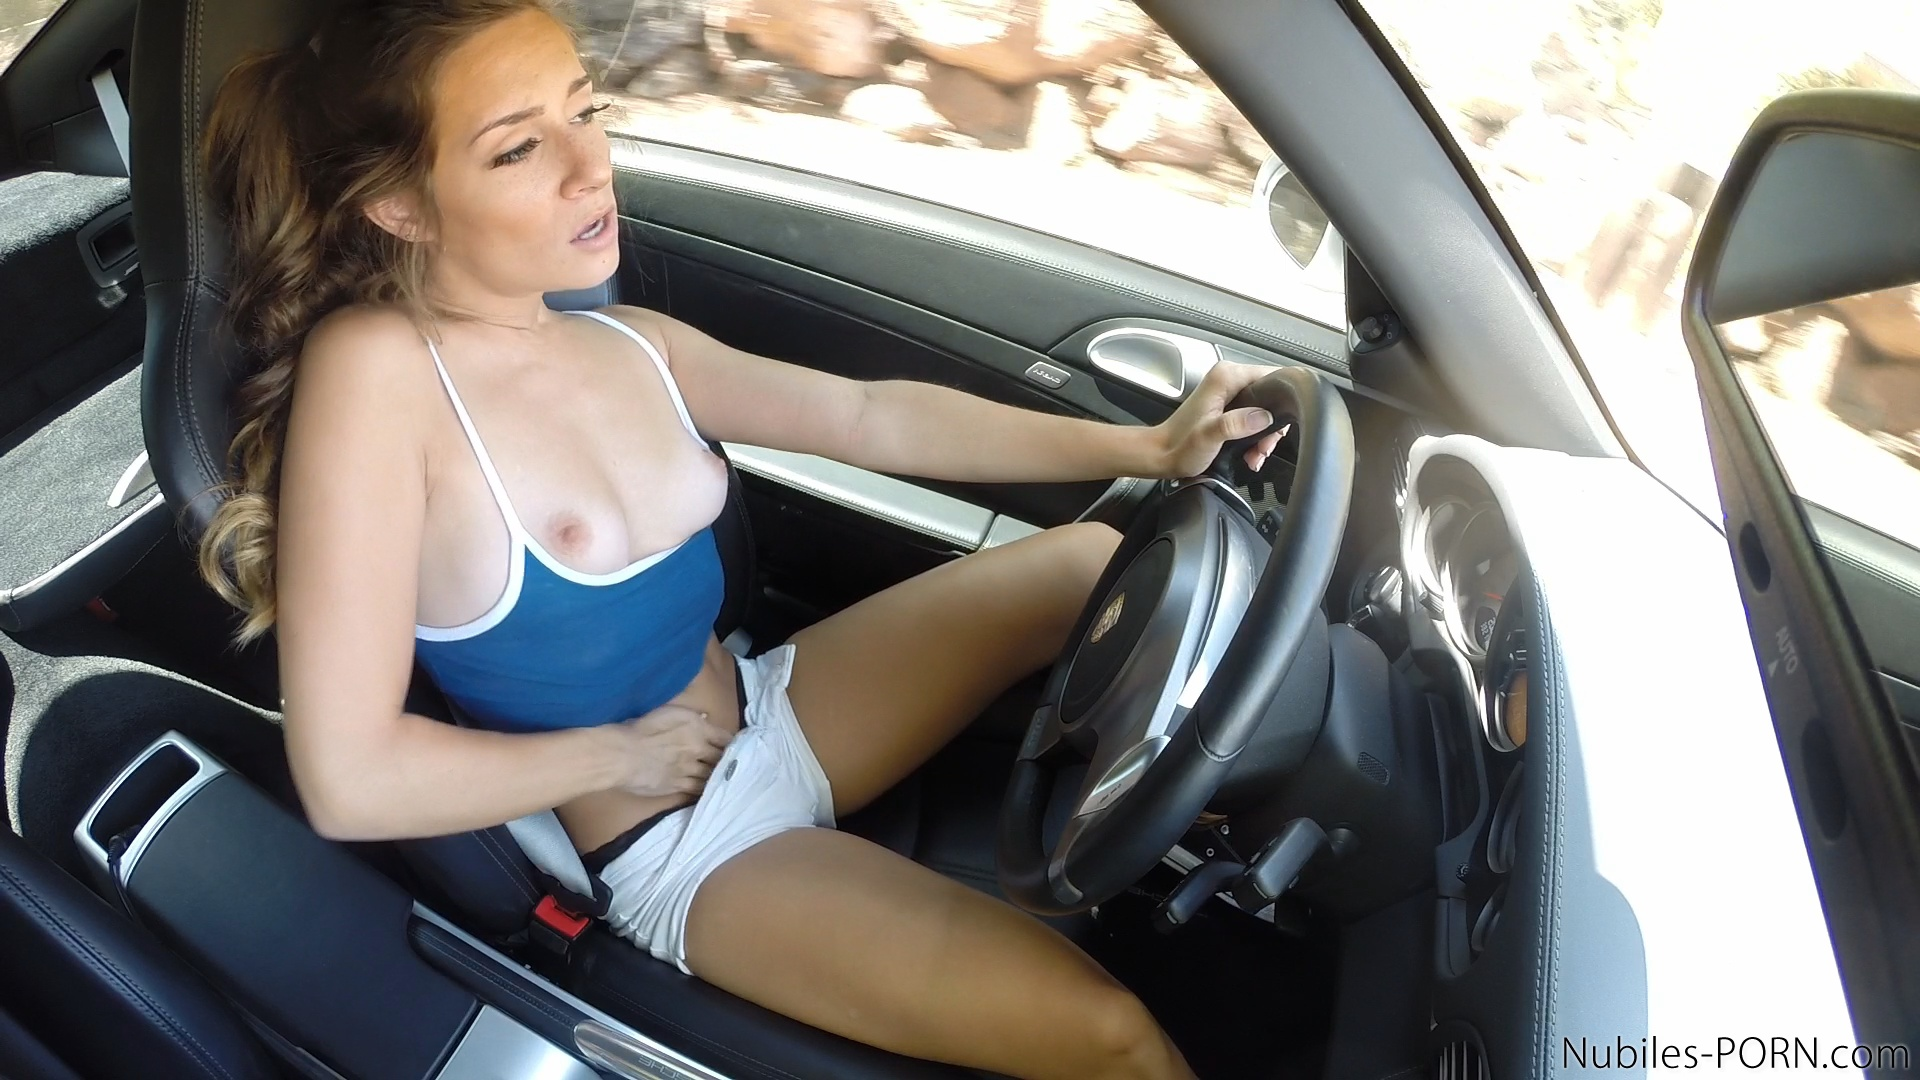 Cars nude women and